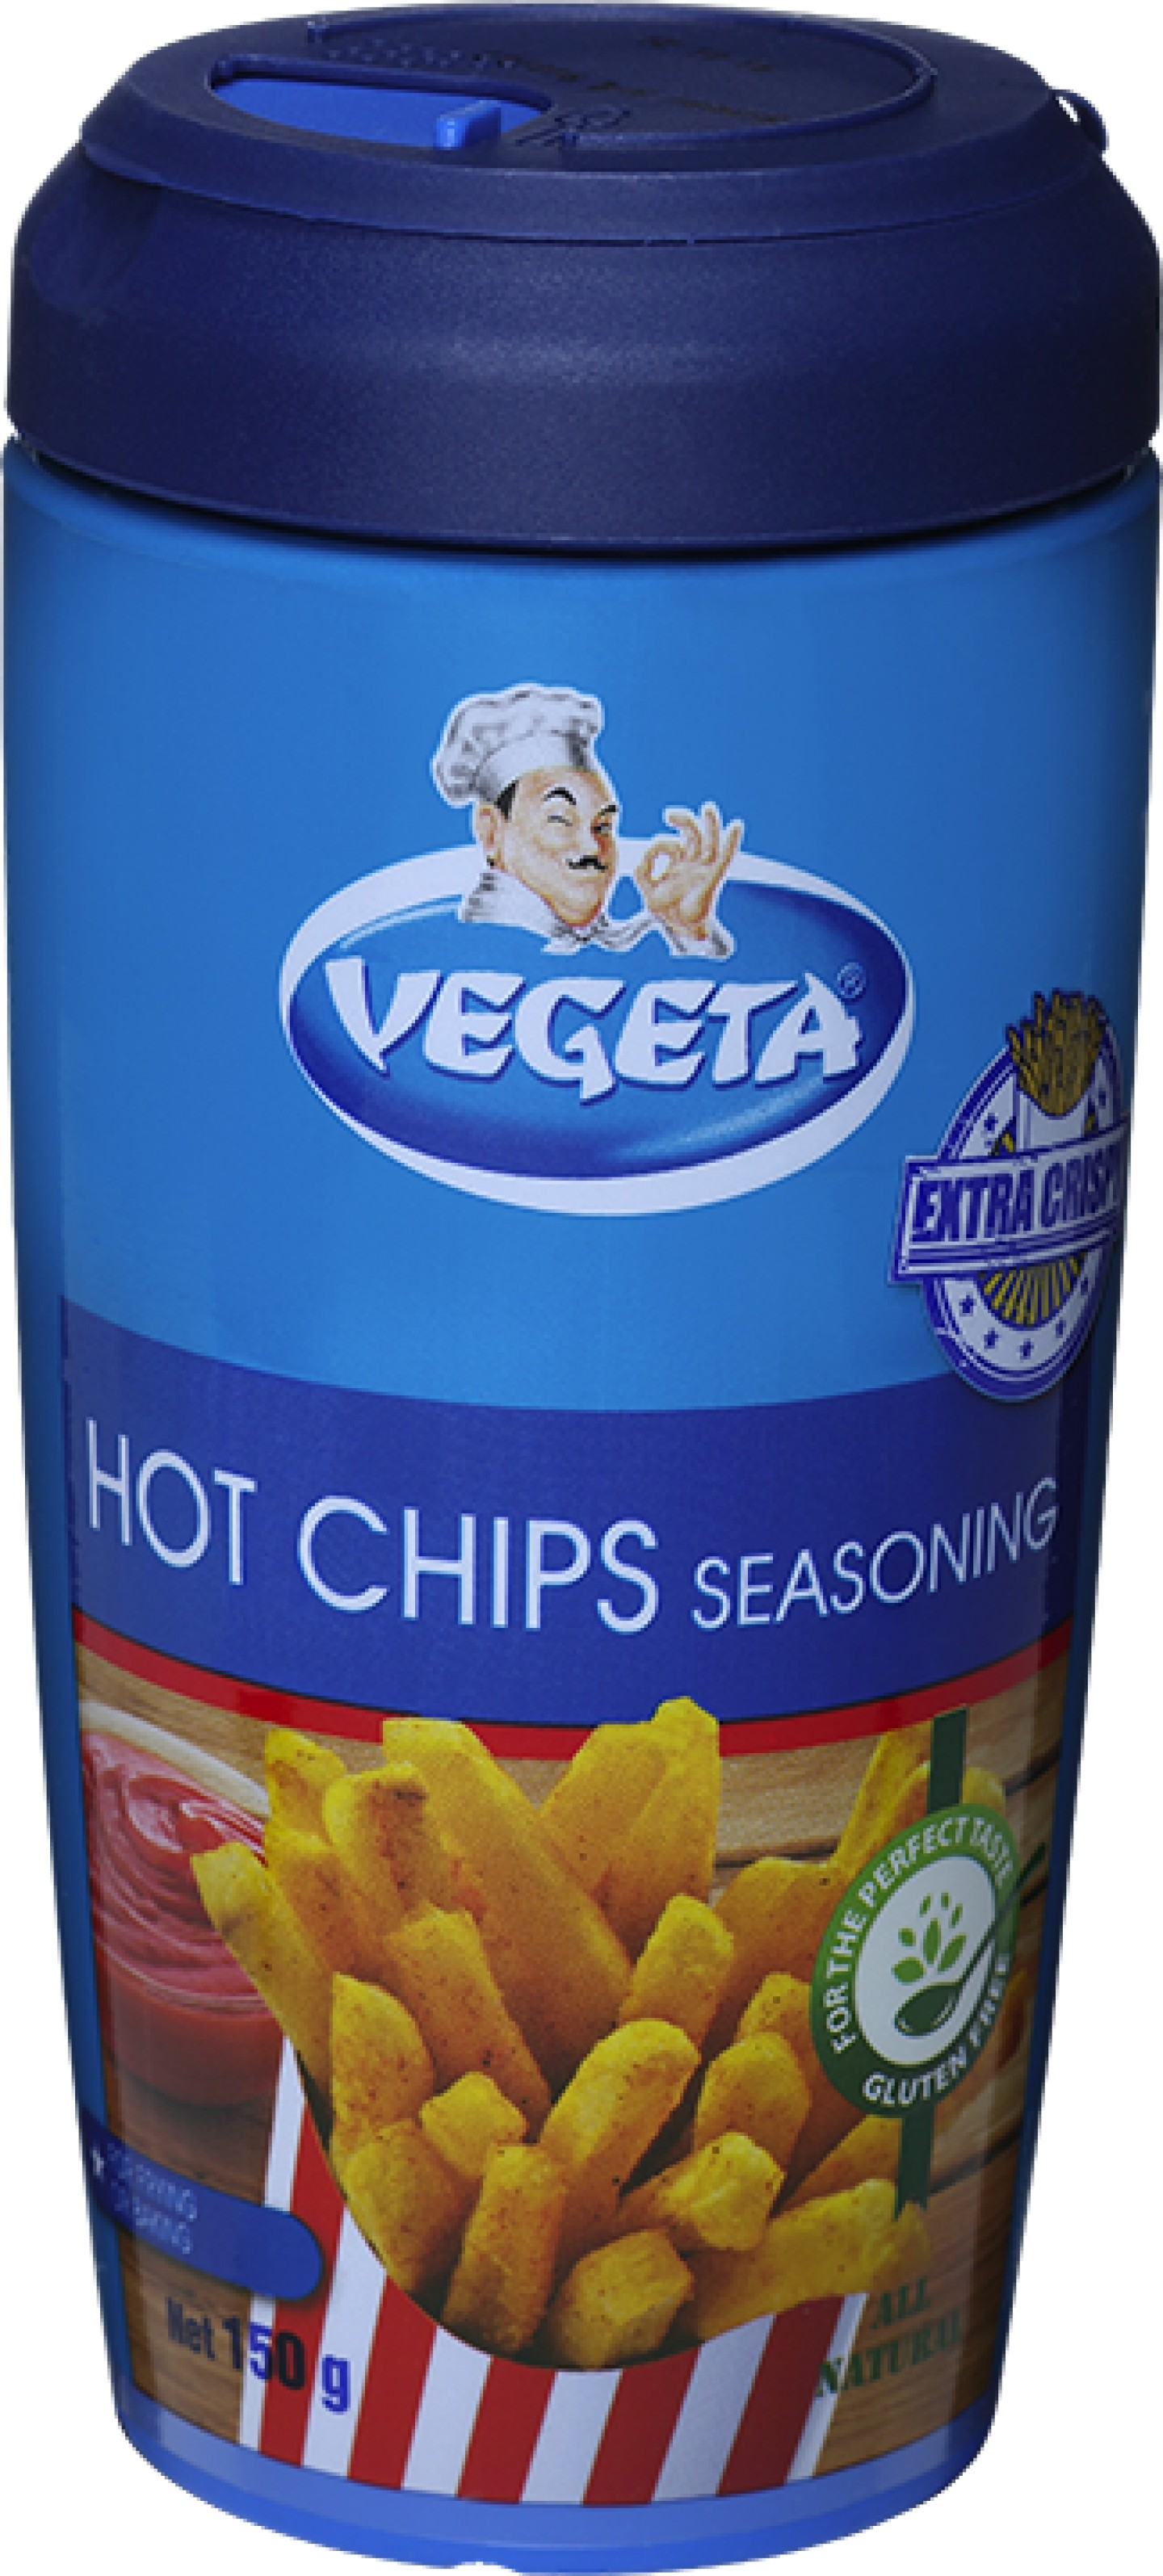 Bbq chip seasoning